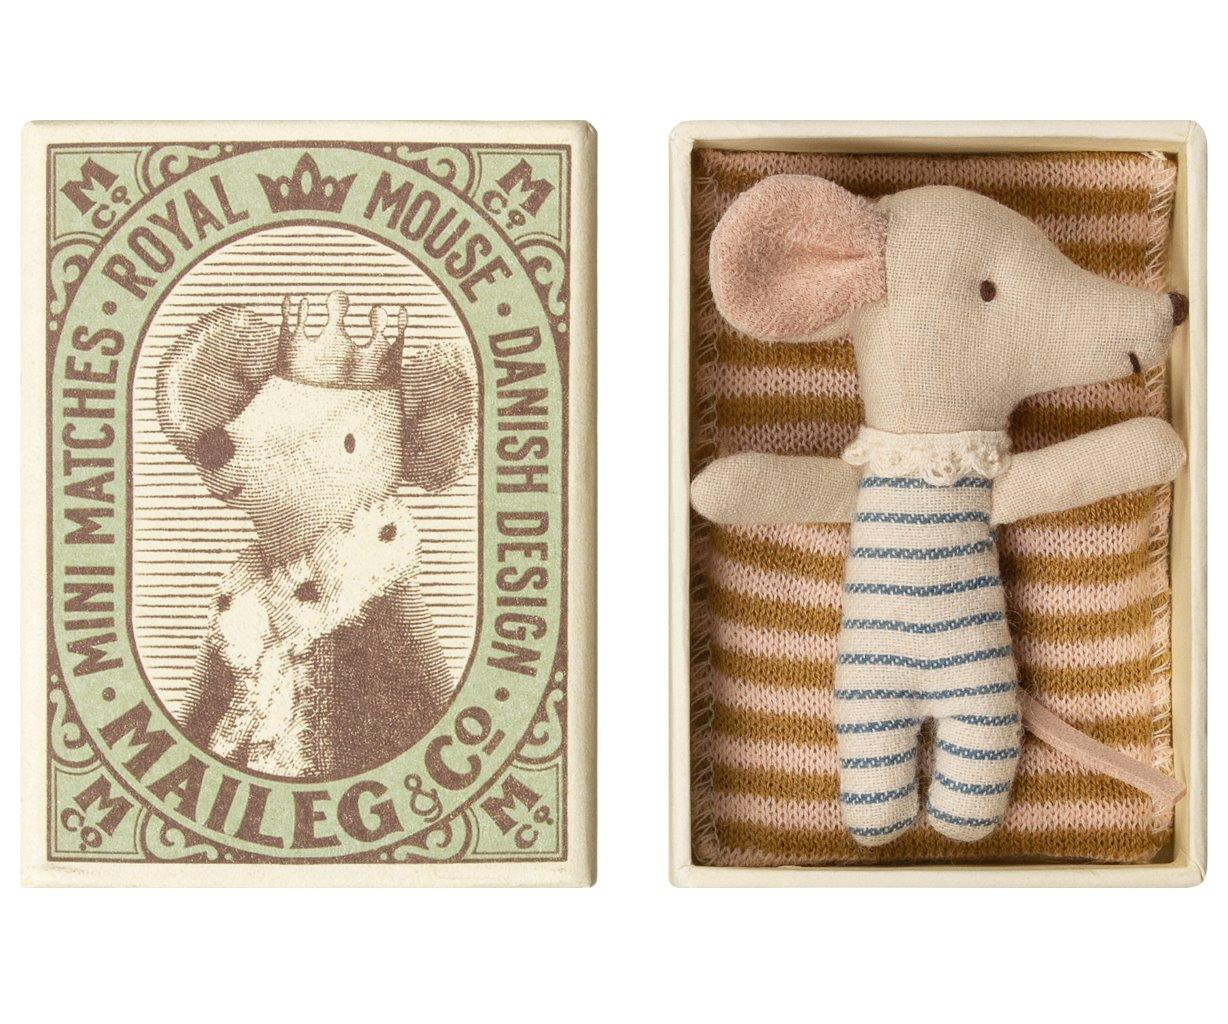 Maileg Maileg Baby Mouse Sleepy/wakey in Box - Boy - Pearls & Swines